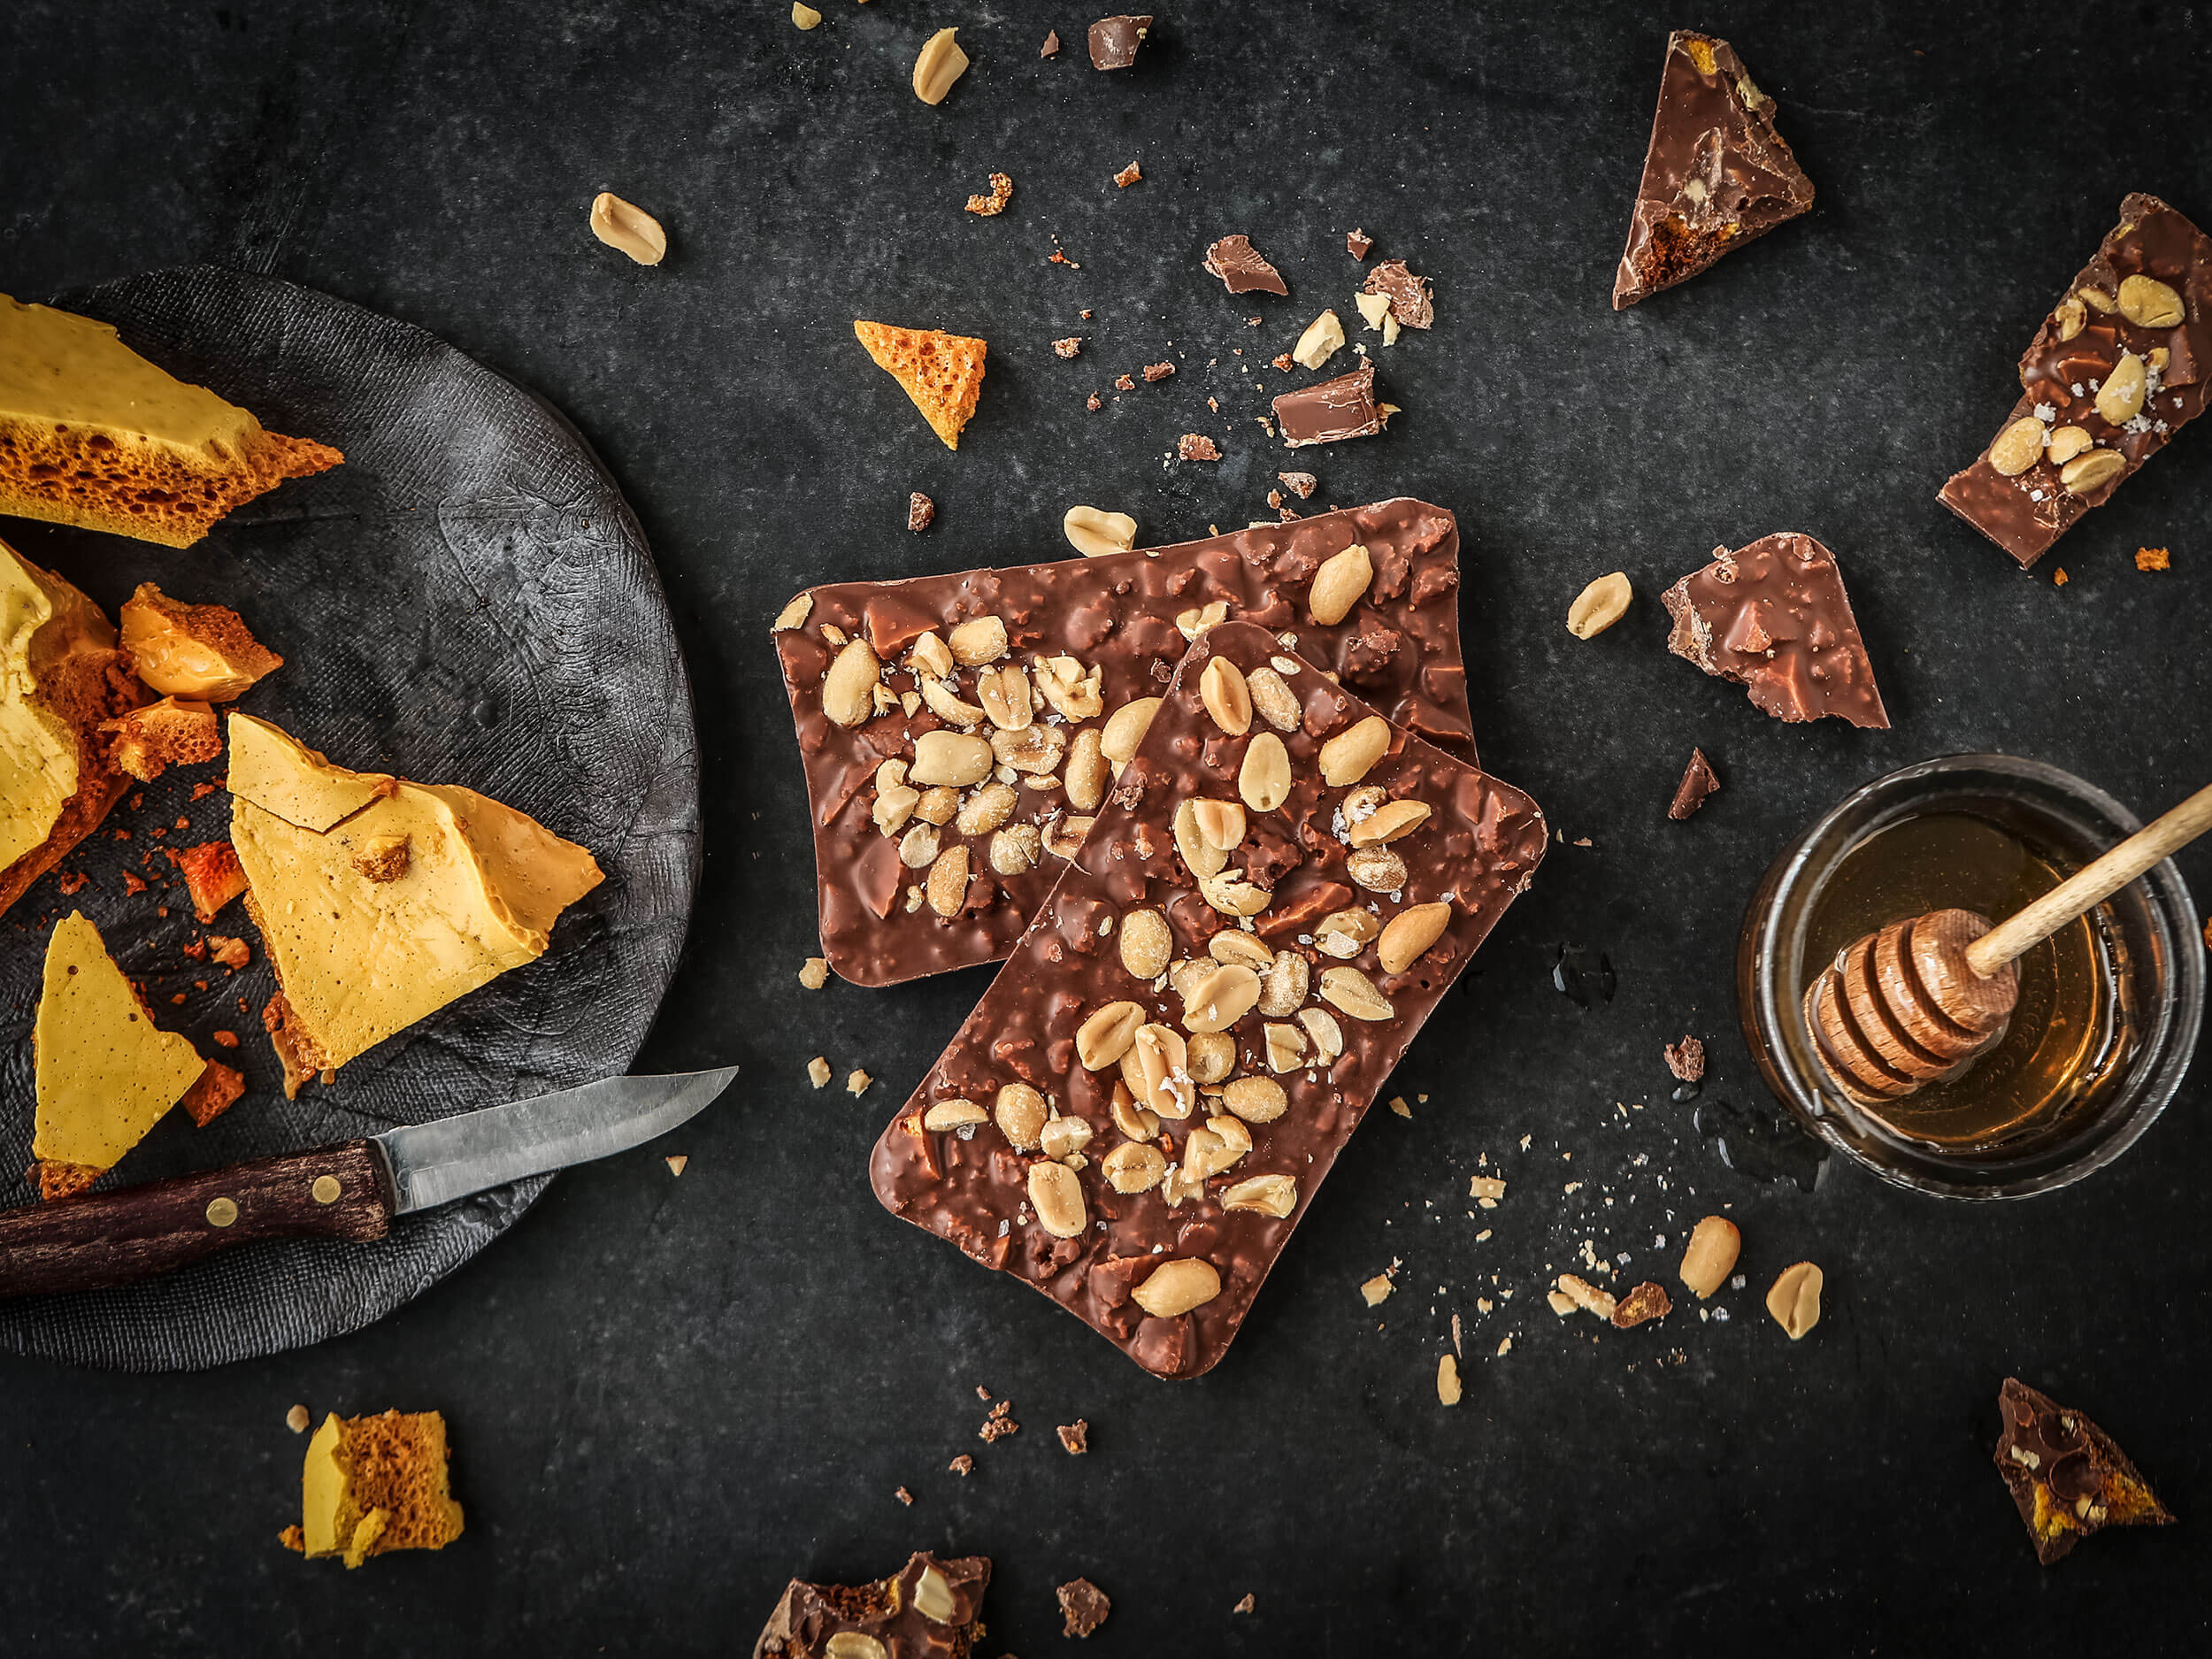 Honeycomb and Roasted Peanut - A long soak and a good read. When is the last time you treated yourself to that incomparable pairing of a bath and a book? It doesn't matter, since it can never be enjoyed often enough. To maximize the moment's indulgence, include Rhoda Cocoa's irresistible Honeycomb and Roasted Peanut chocolate bar, sweet and salty at its best.